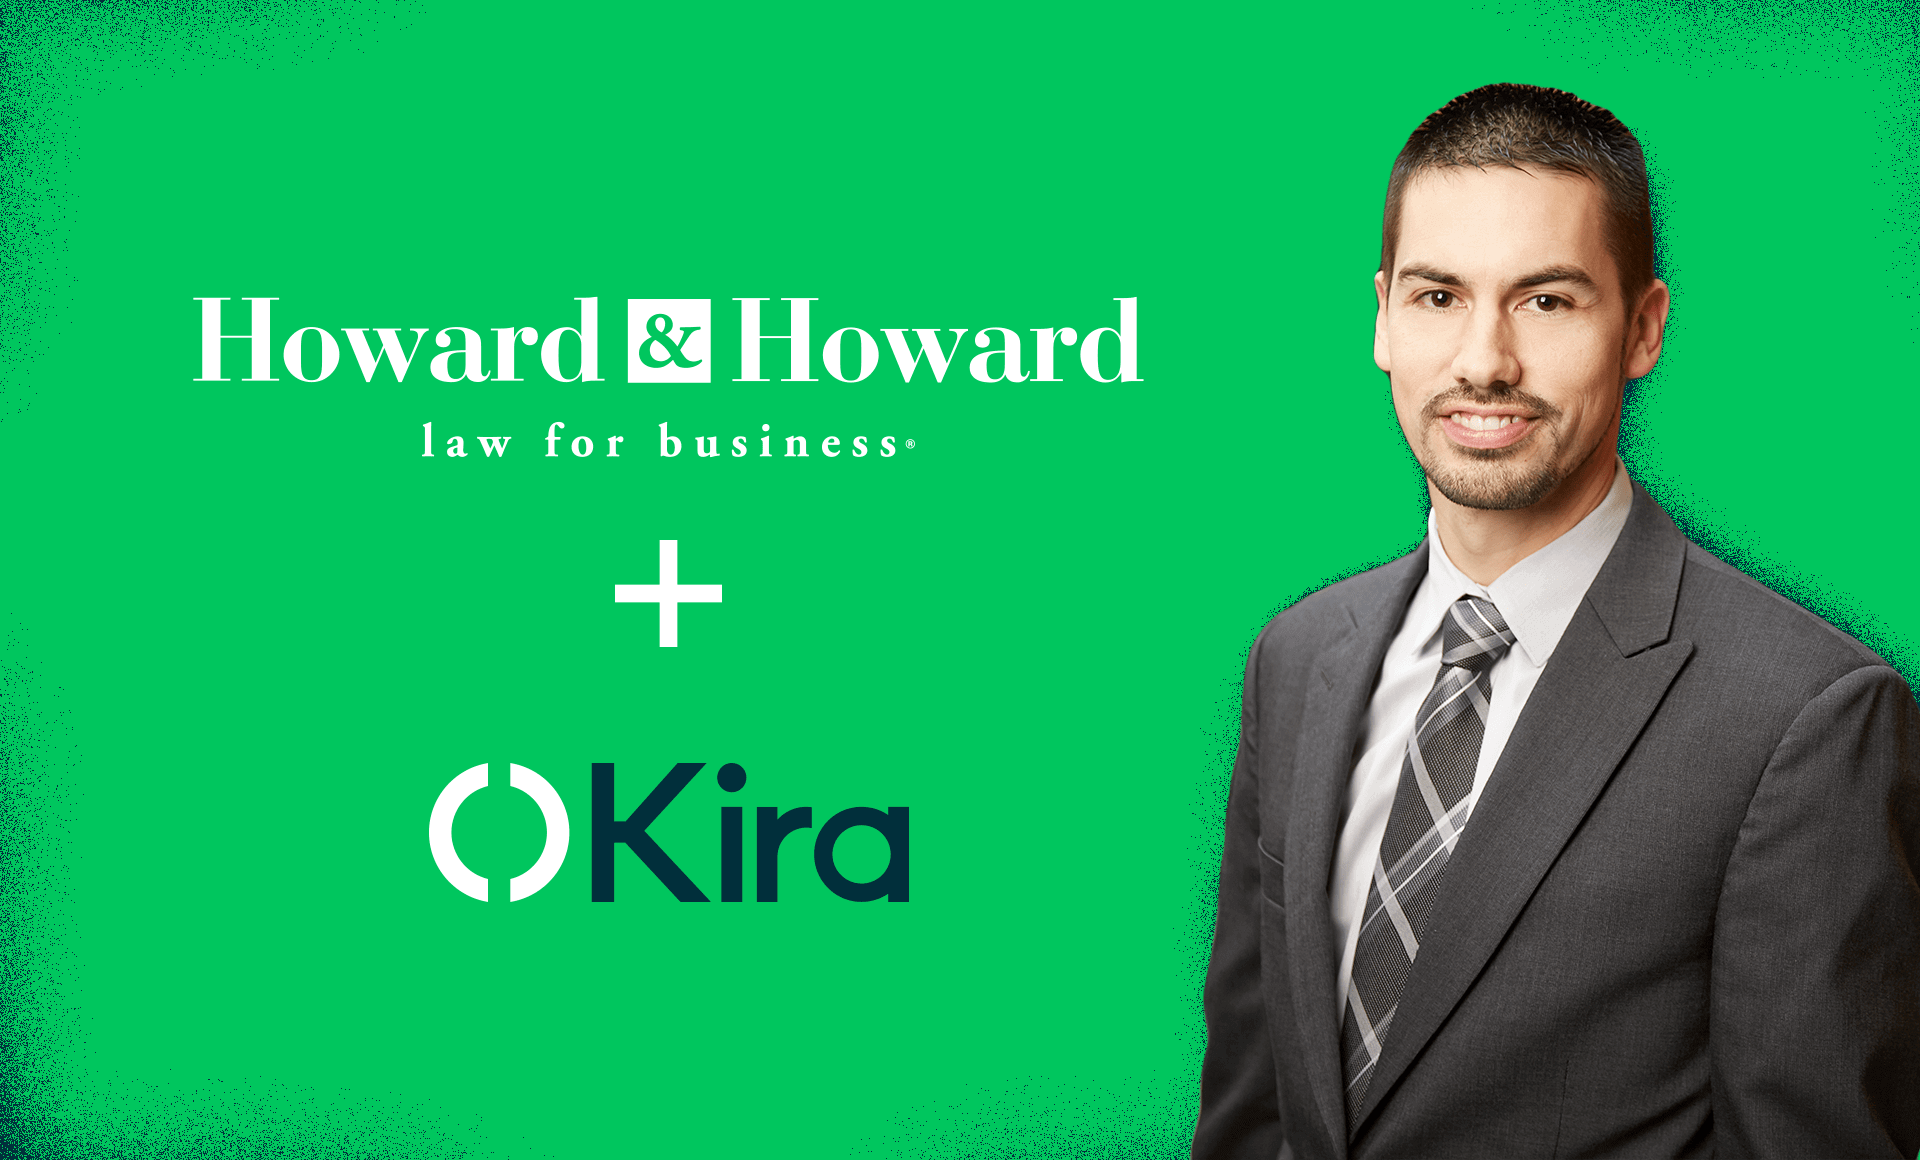 Read more about Howard & Howard Implements Kira Systems' Contract Review & Analysis Software